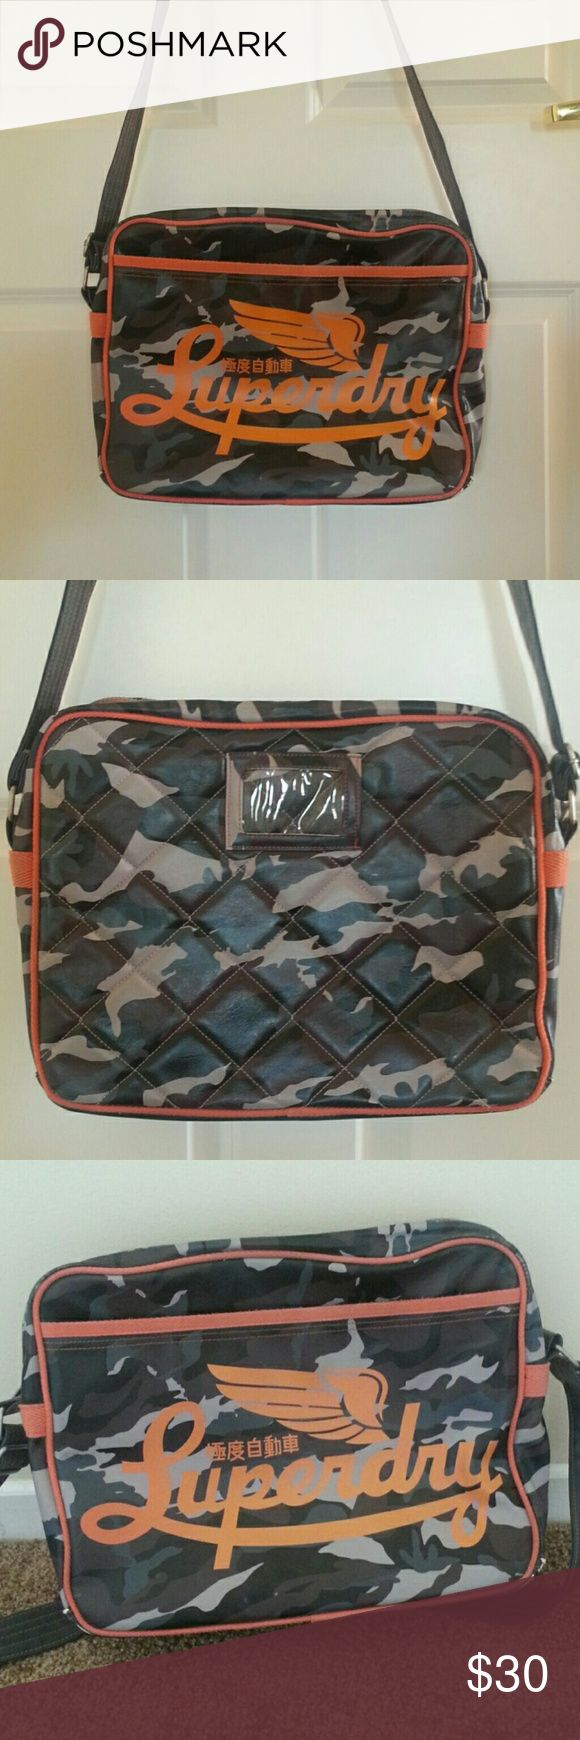 Superdry orange bag Large superdry bag. Good condition but shows some wear as pictured. Inside is perfect. Dimensions 14inches by 11 inches high Superdry Bags Messenger Bags